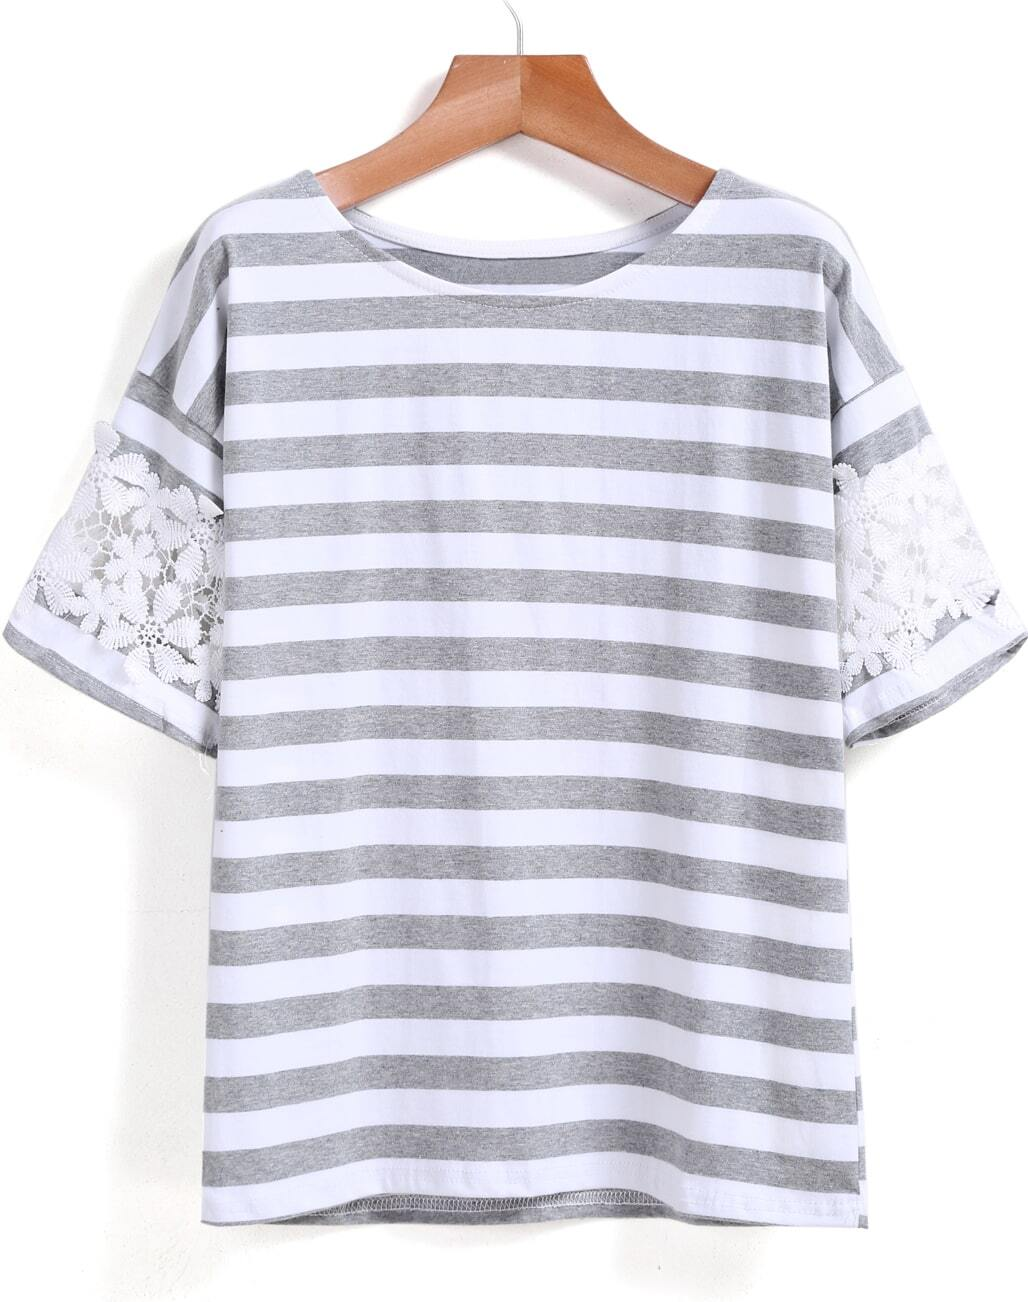 Grey white lace short sleeve striped t shirt shein sheinside for Grey striped t shirt